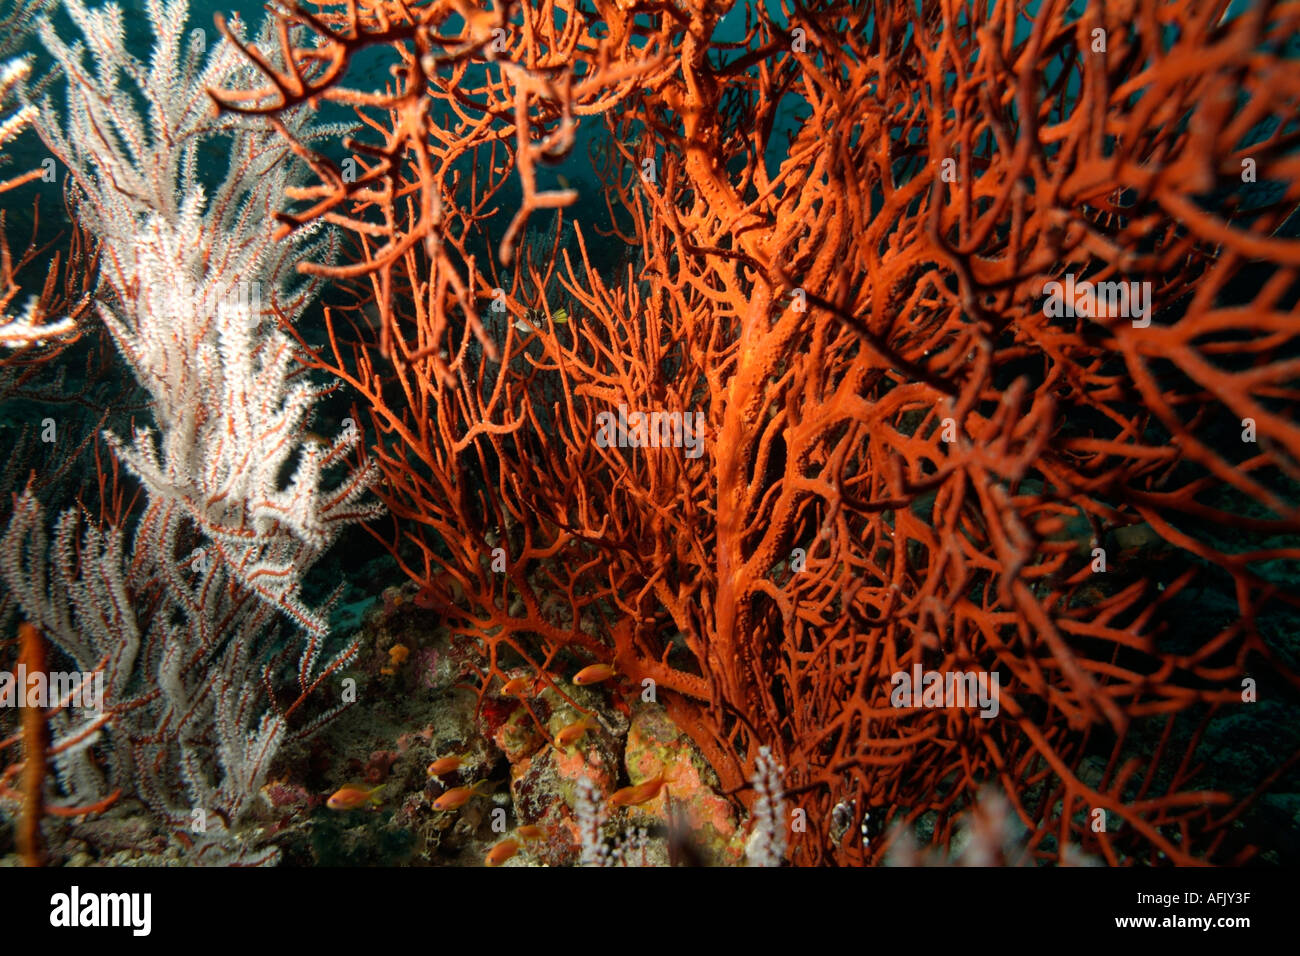 Indian Ocean coral on a reef - Stock Image